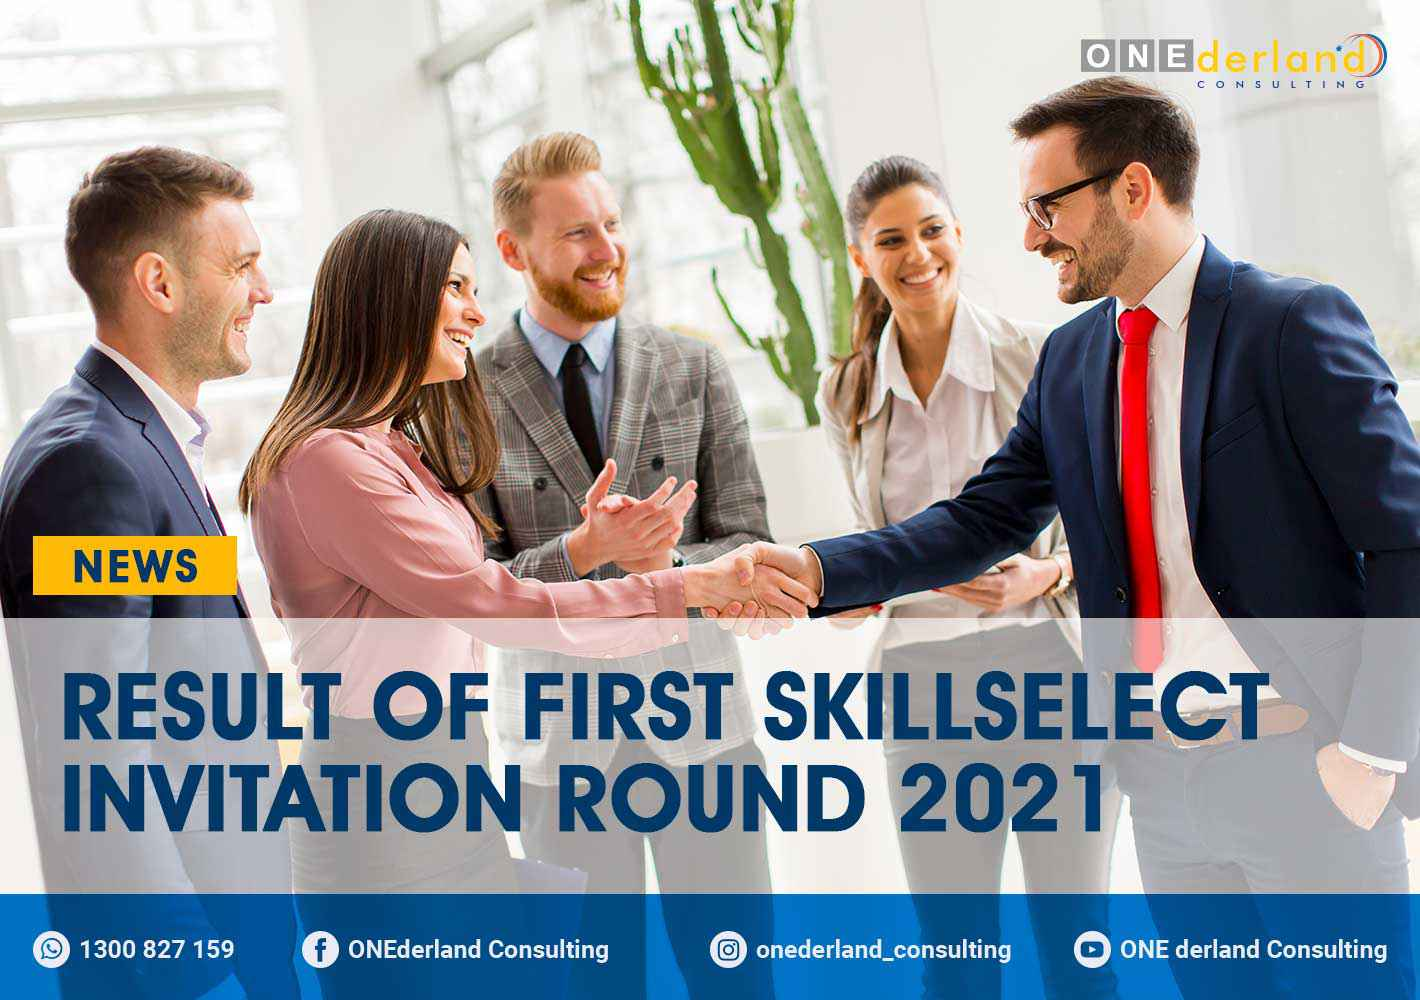 Result of First SkillSelect Invitation Round 2021